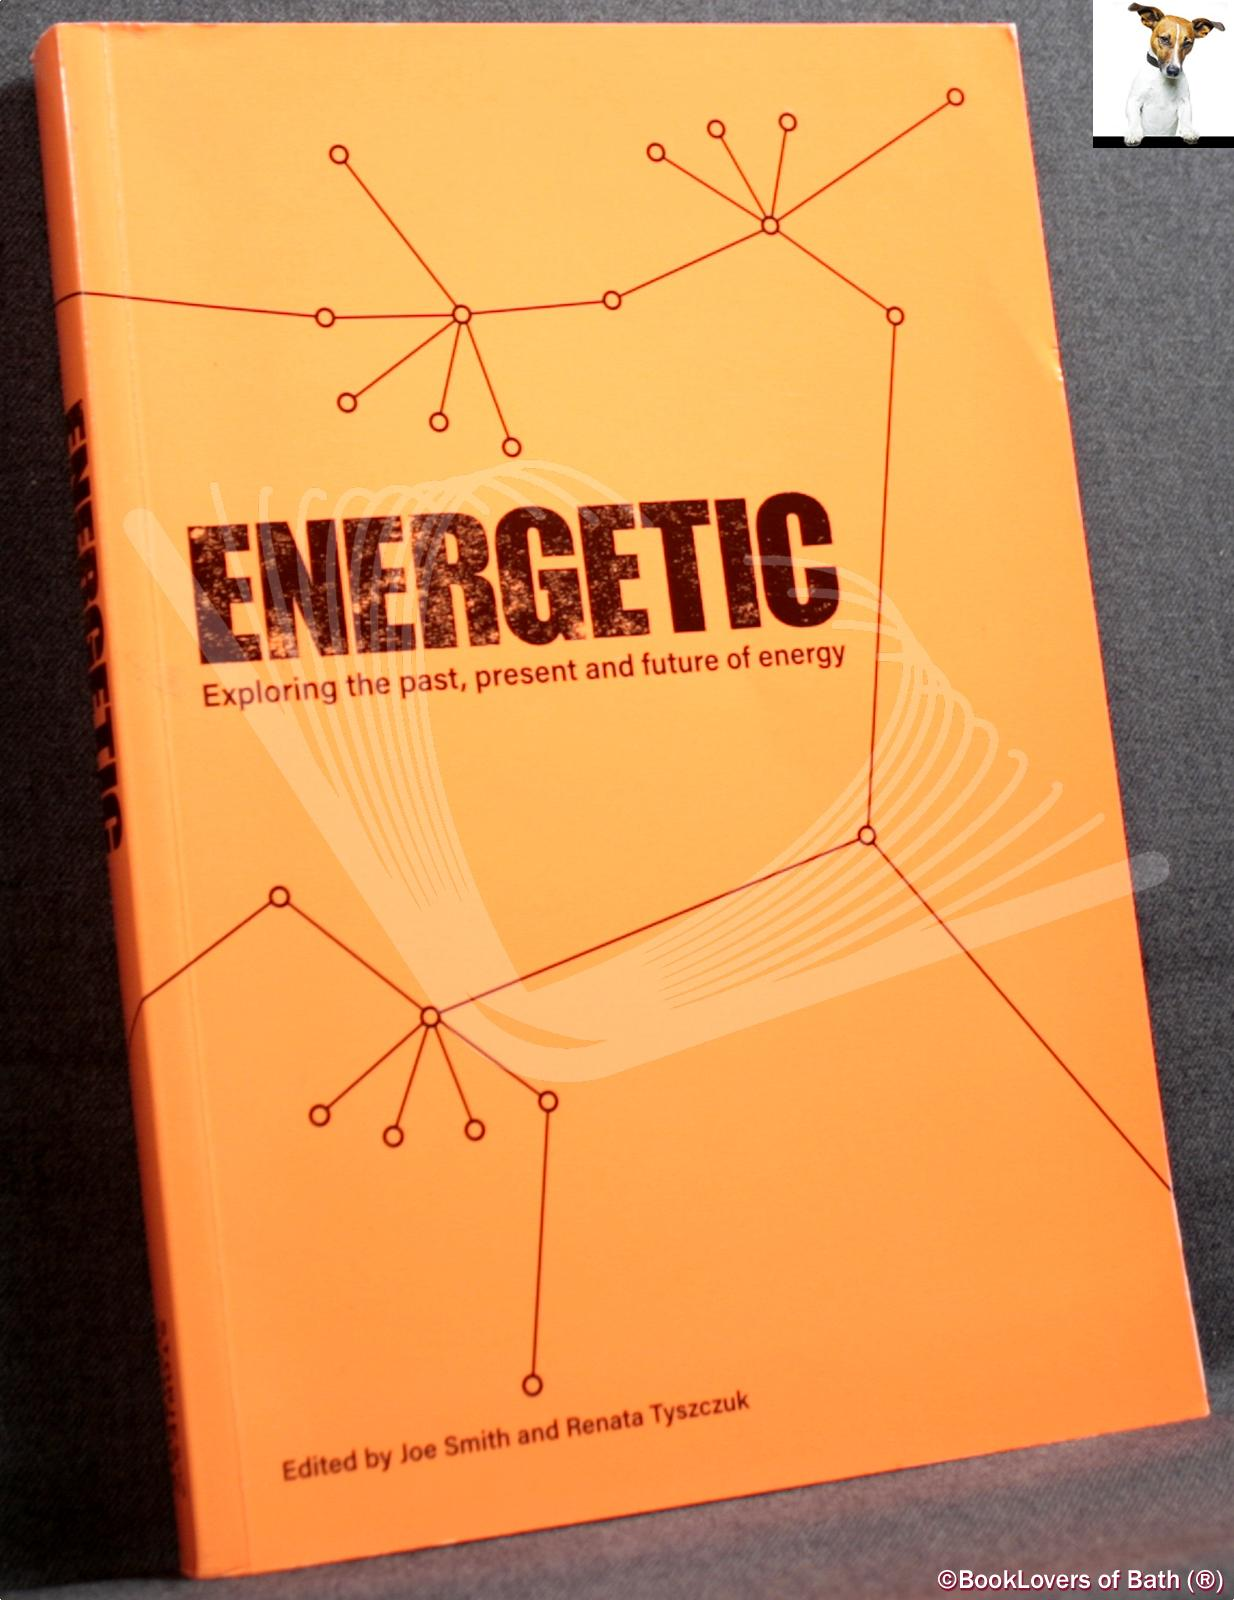 Energetic: Exploring the Past, Present and Future of Energy - Edited by Joe Smith & Renata Tyszczuk